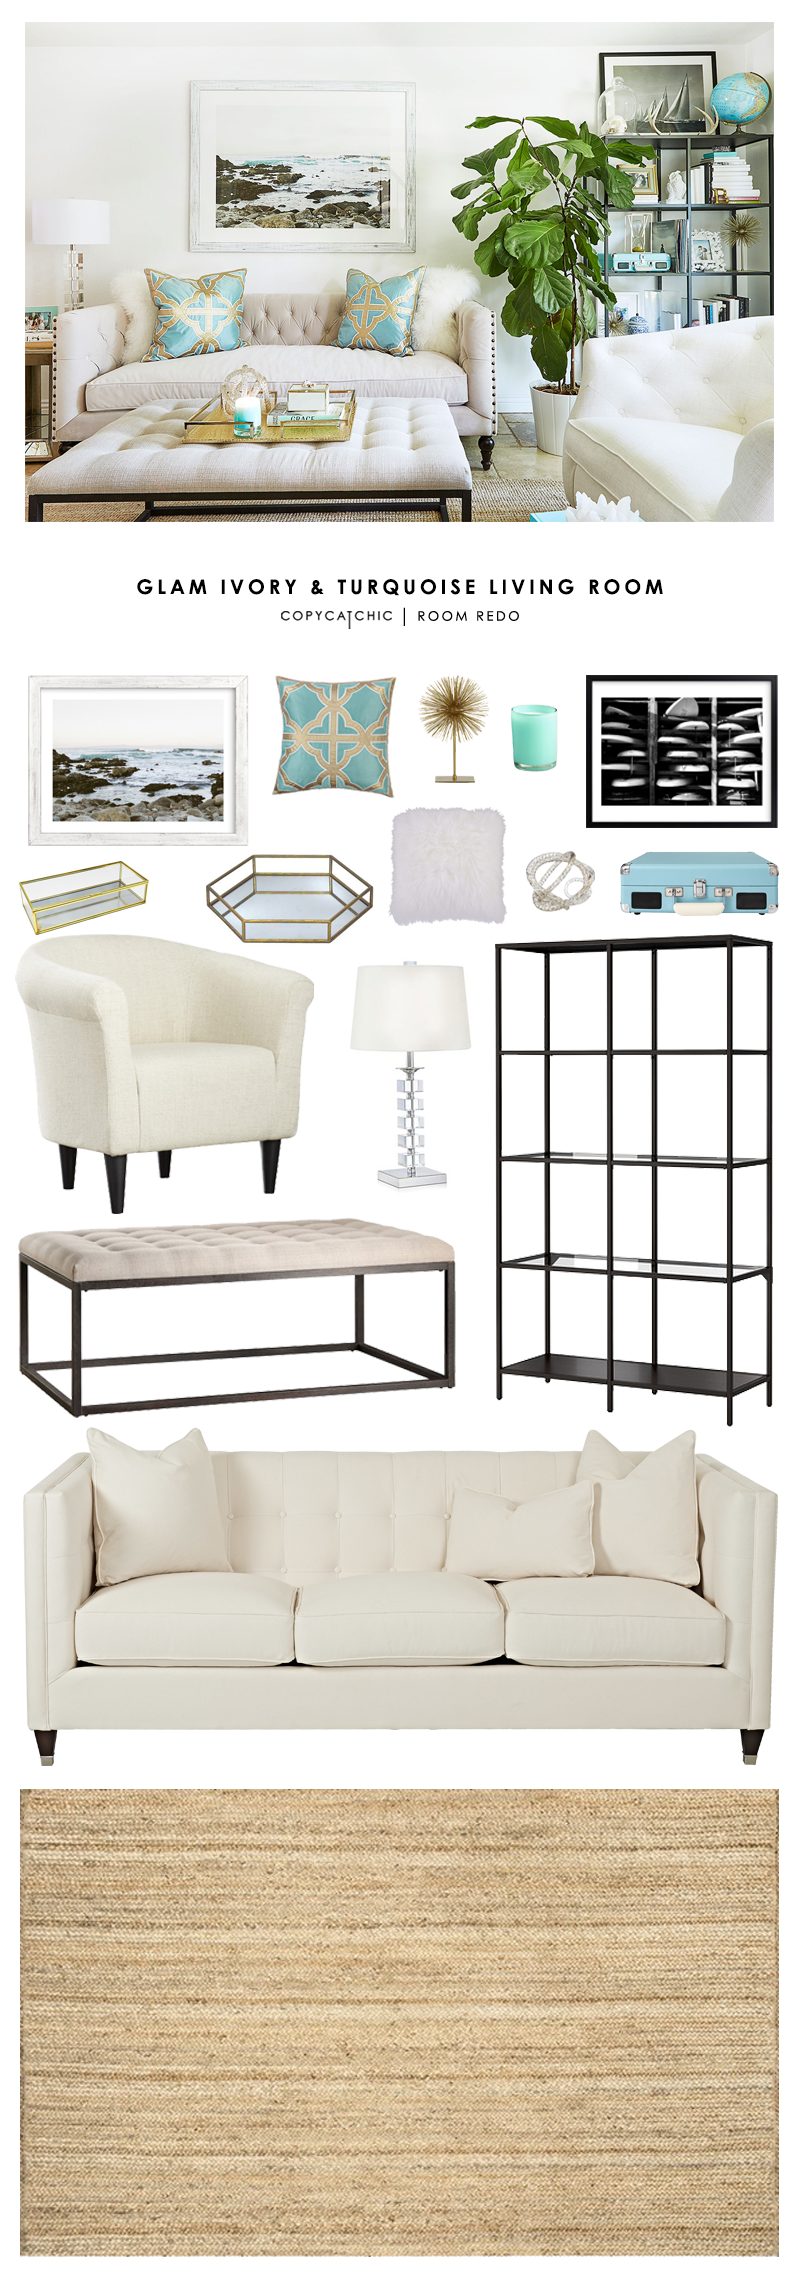 Copy cat chic room redo glam ivory and turquoise living - How to redo a living room under 100 ...